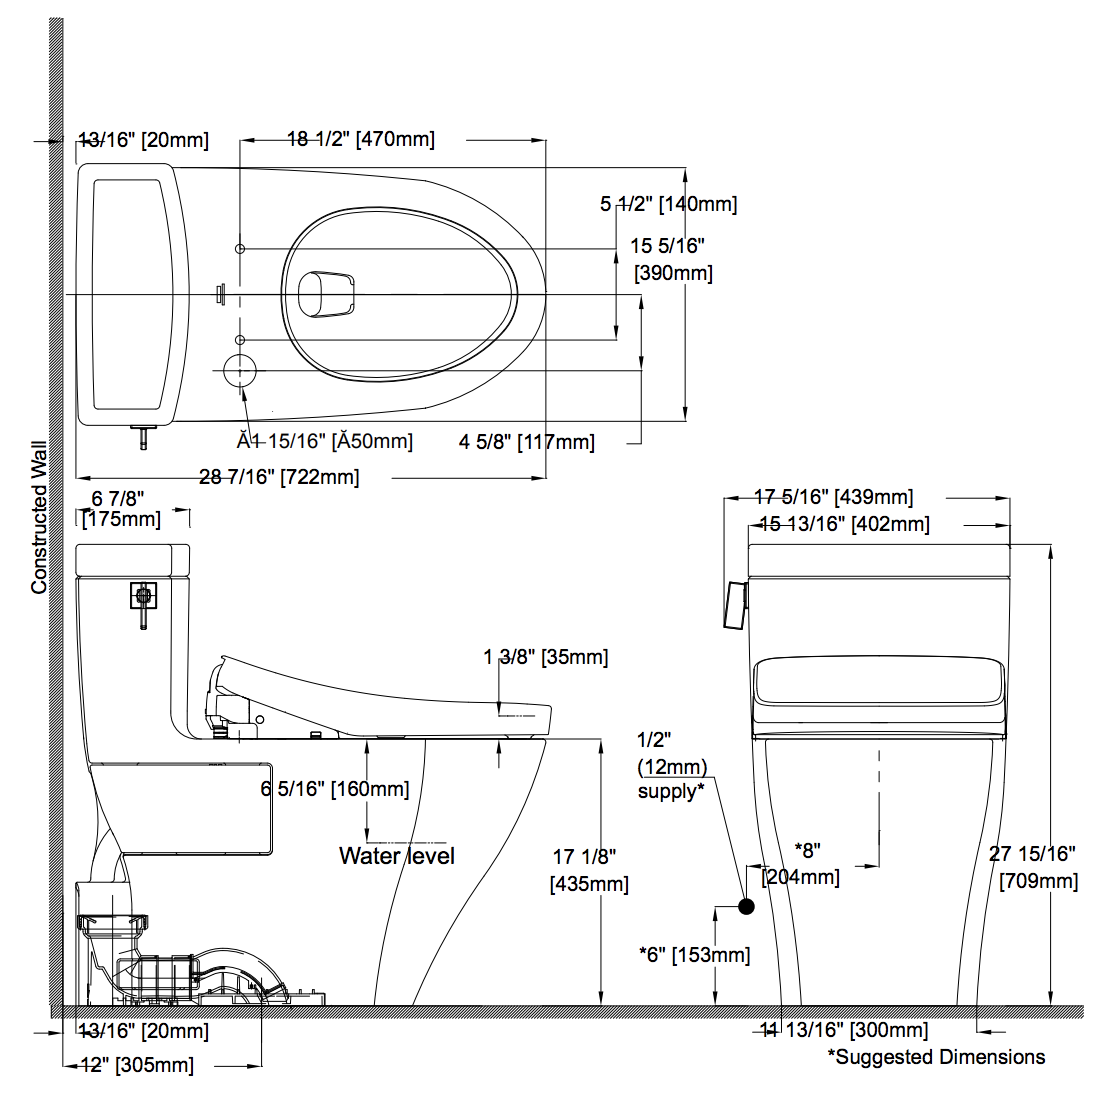 legato-washlet-s550e-one-piece-toilet-1.28-gpf-diagram.png